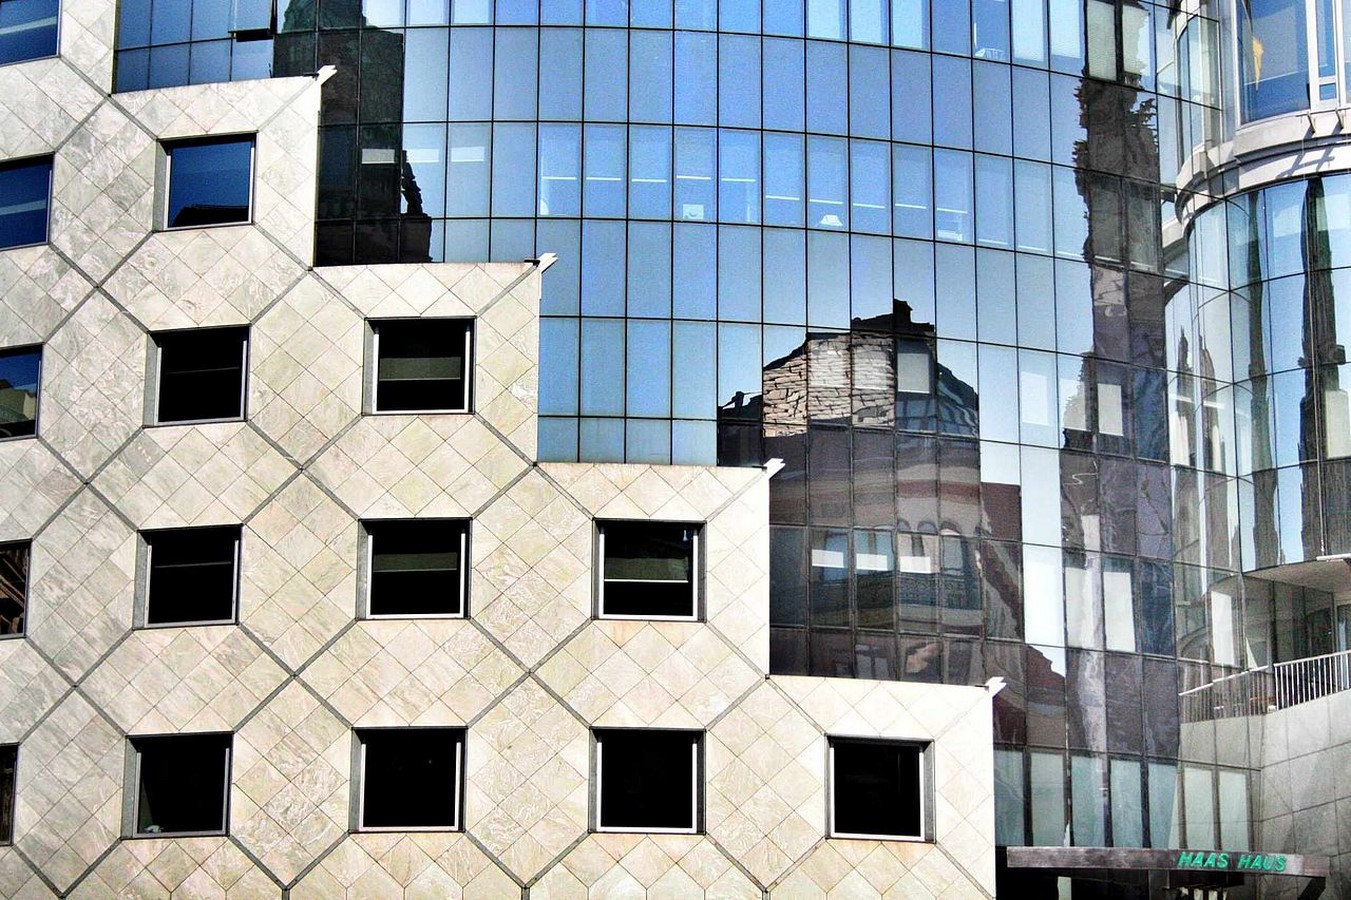 The Haas Haus by Hans Hollein: Contrasting with the adjacent - Sheet5